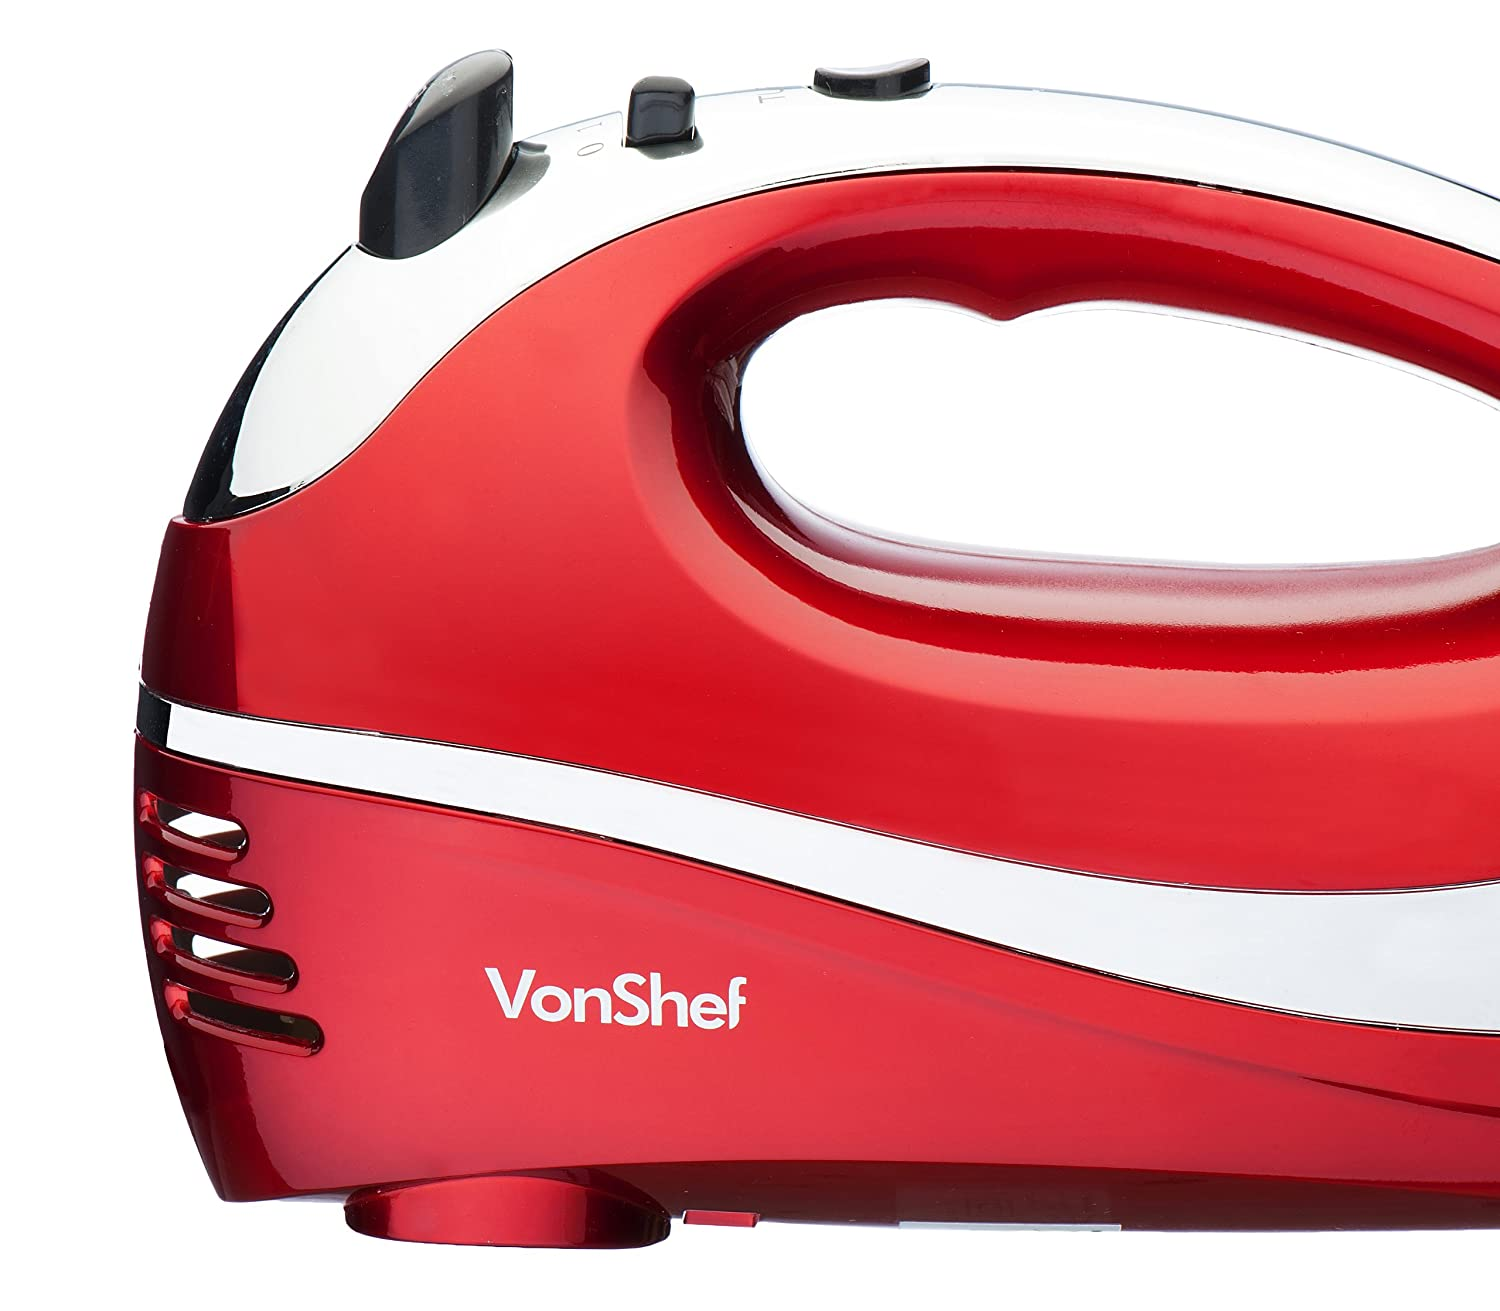 6 Speed With Turbo Button Dough Hook FREE Balloon Whisk Red VonShef Professional 250W Hand Mixer Whisk With Chrome Beater